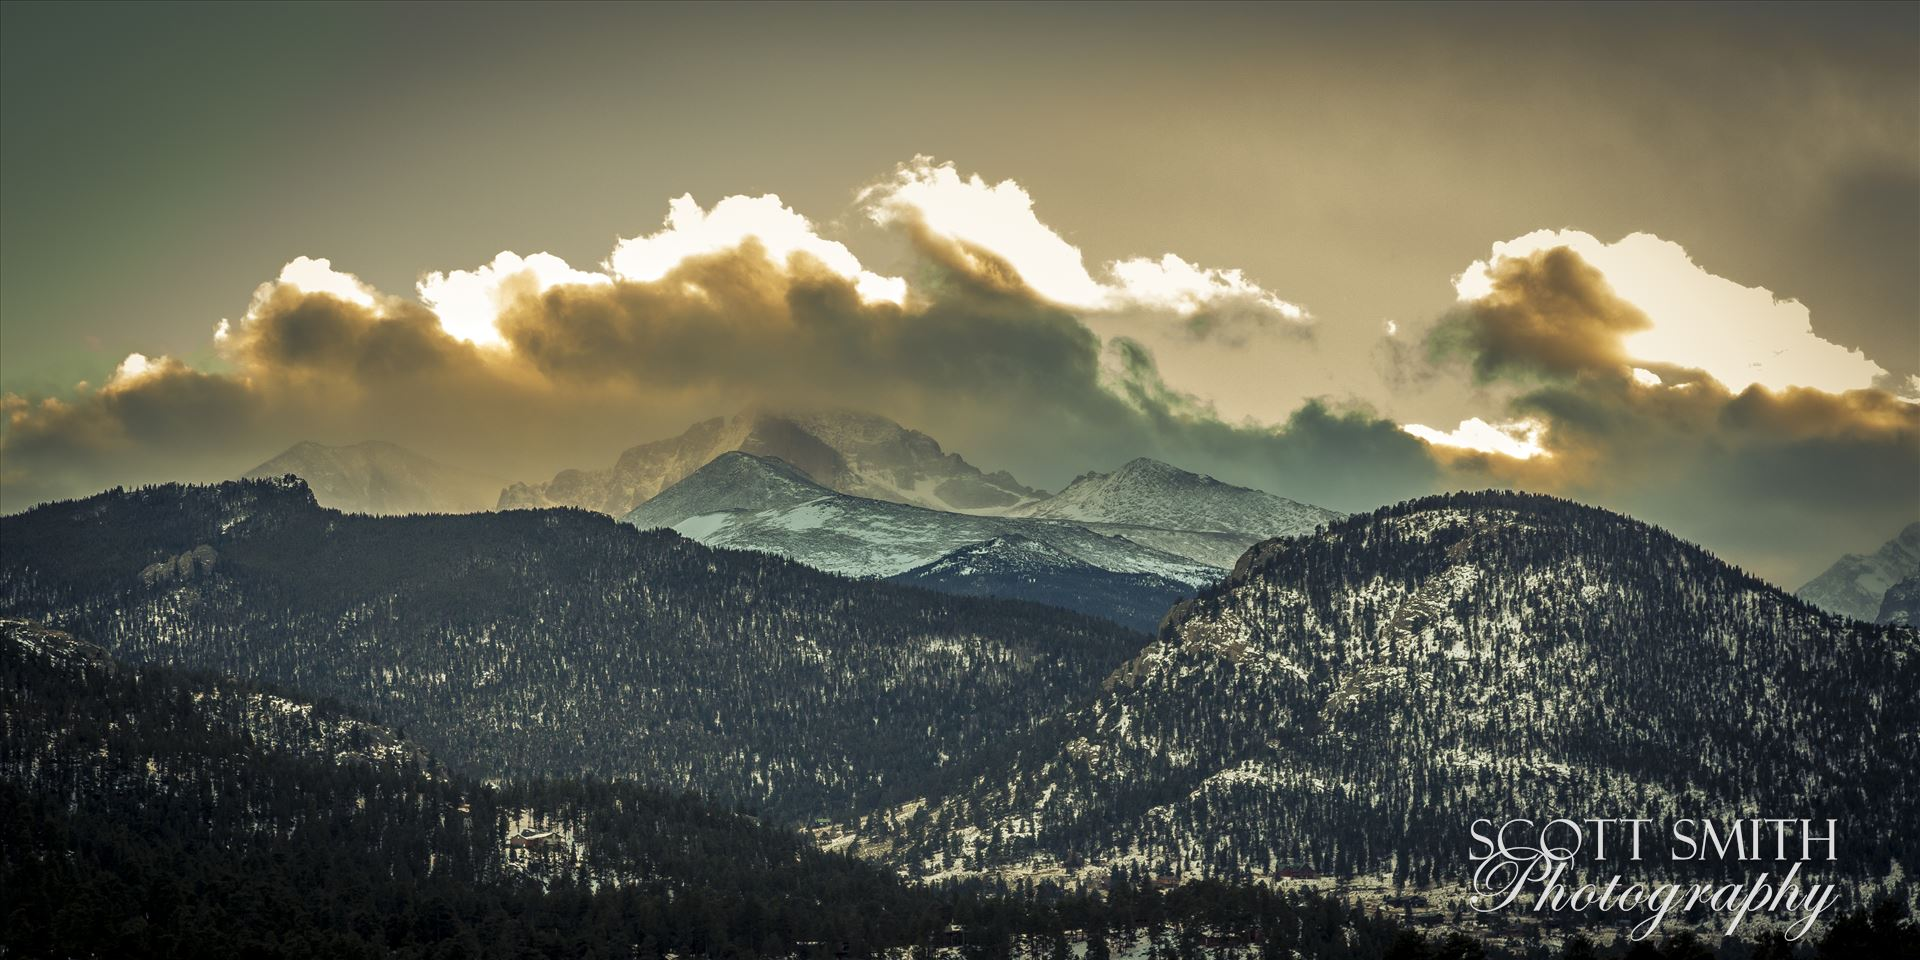 Sunset from Estes - The sun sets over peaks in the Rocky Mountain National Park, as seen from near the famous Stanley Hotel in Estes Park. by D Scott Smith